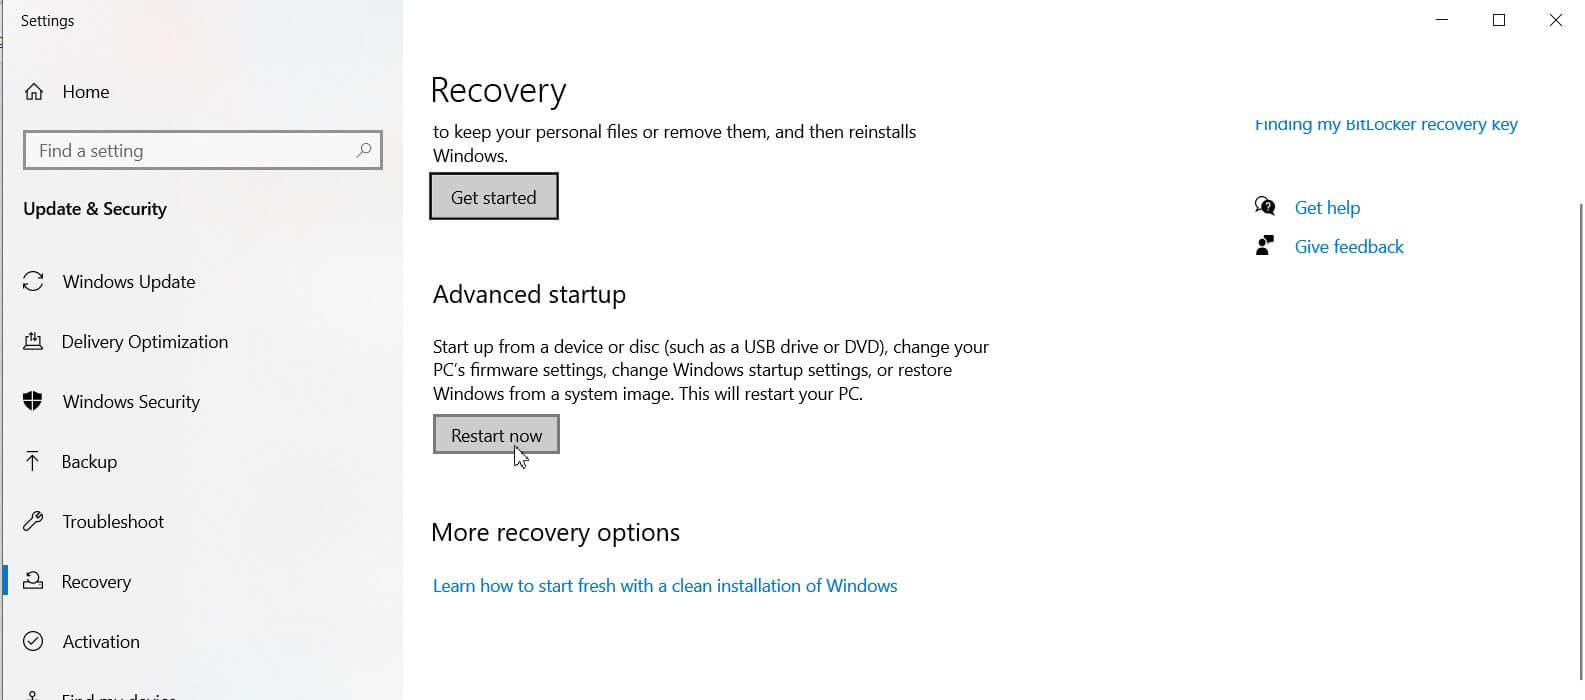 Windows 10 Safe Mode: How to Access It?